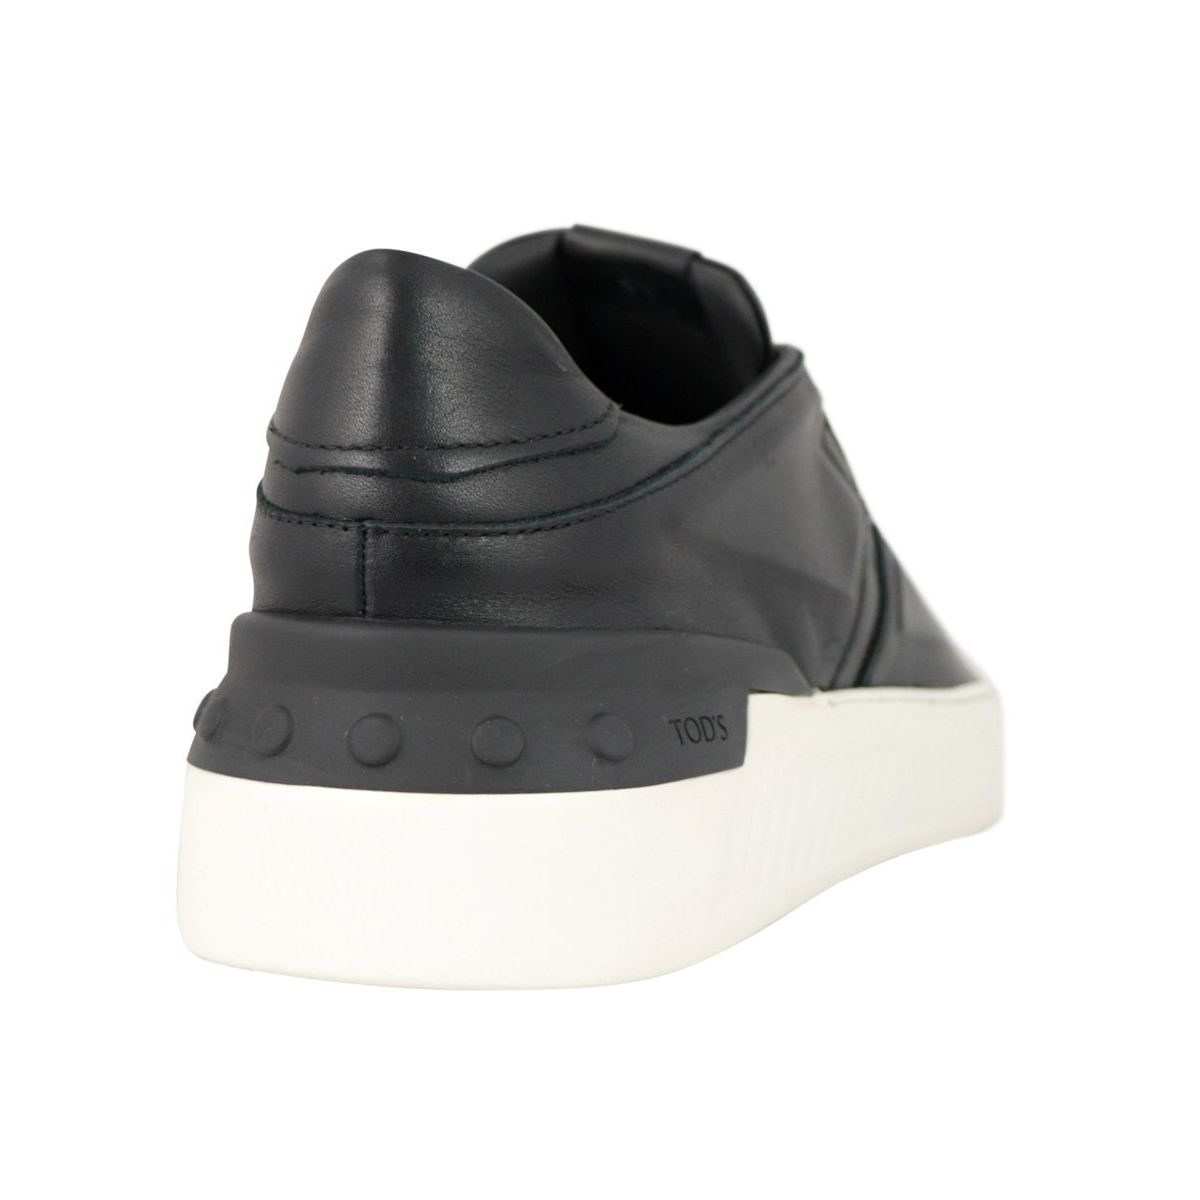 No_Code leather sneakers with drawstring closure Black Tod's